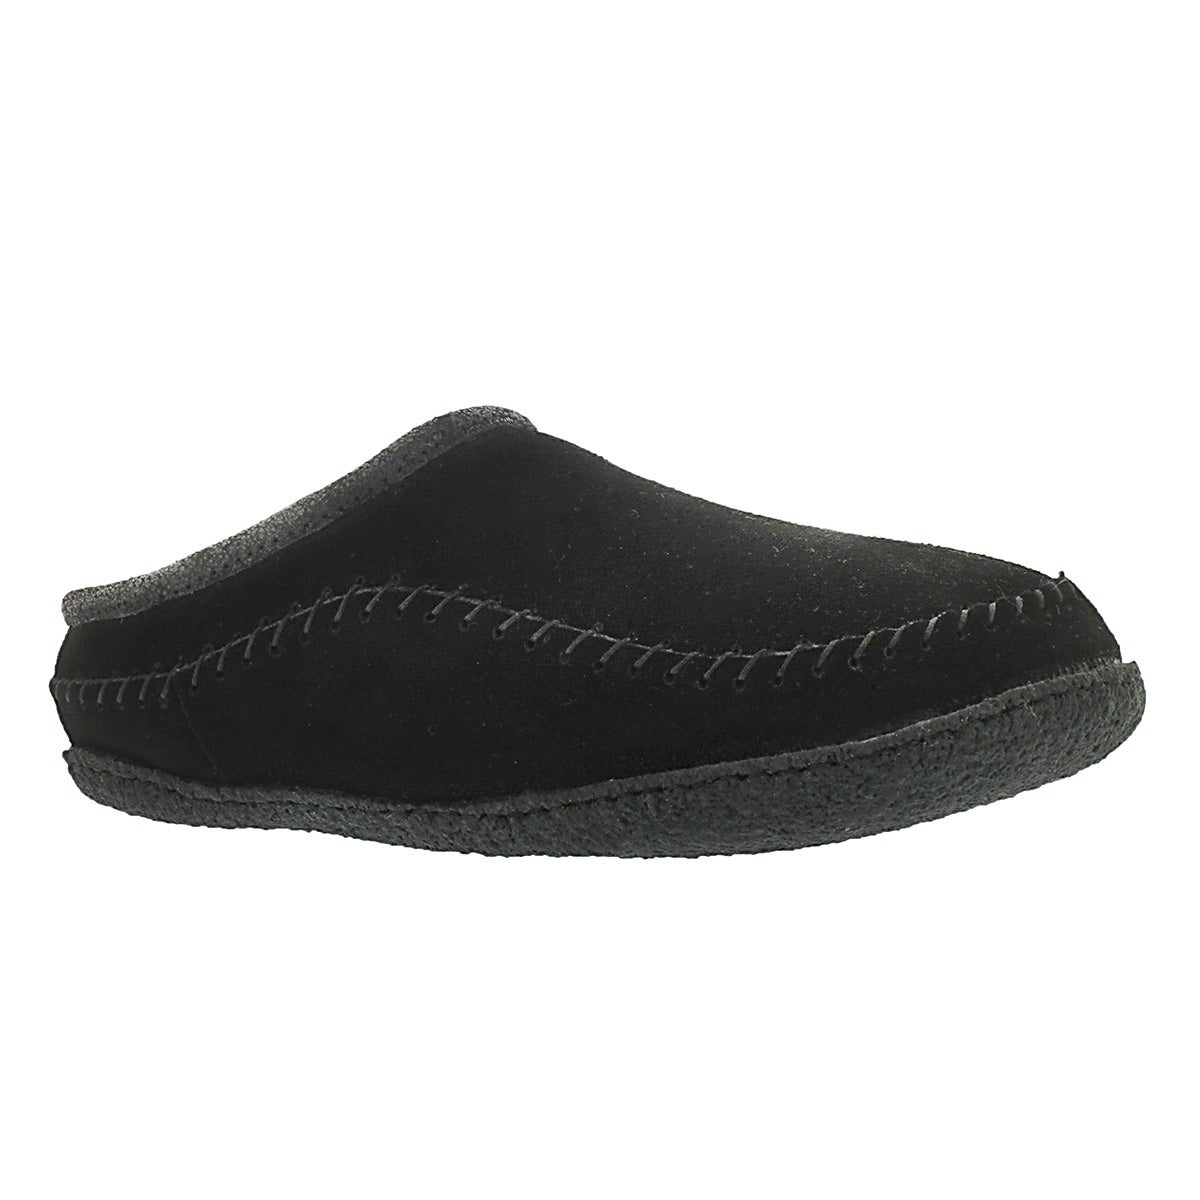 Men's PAULY III black suede open back slippers